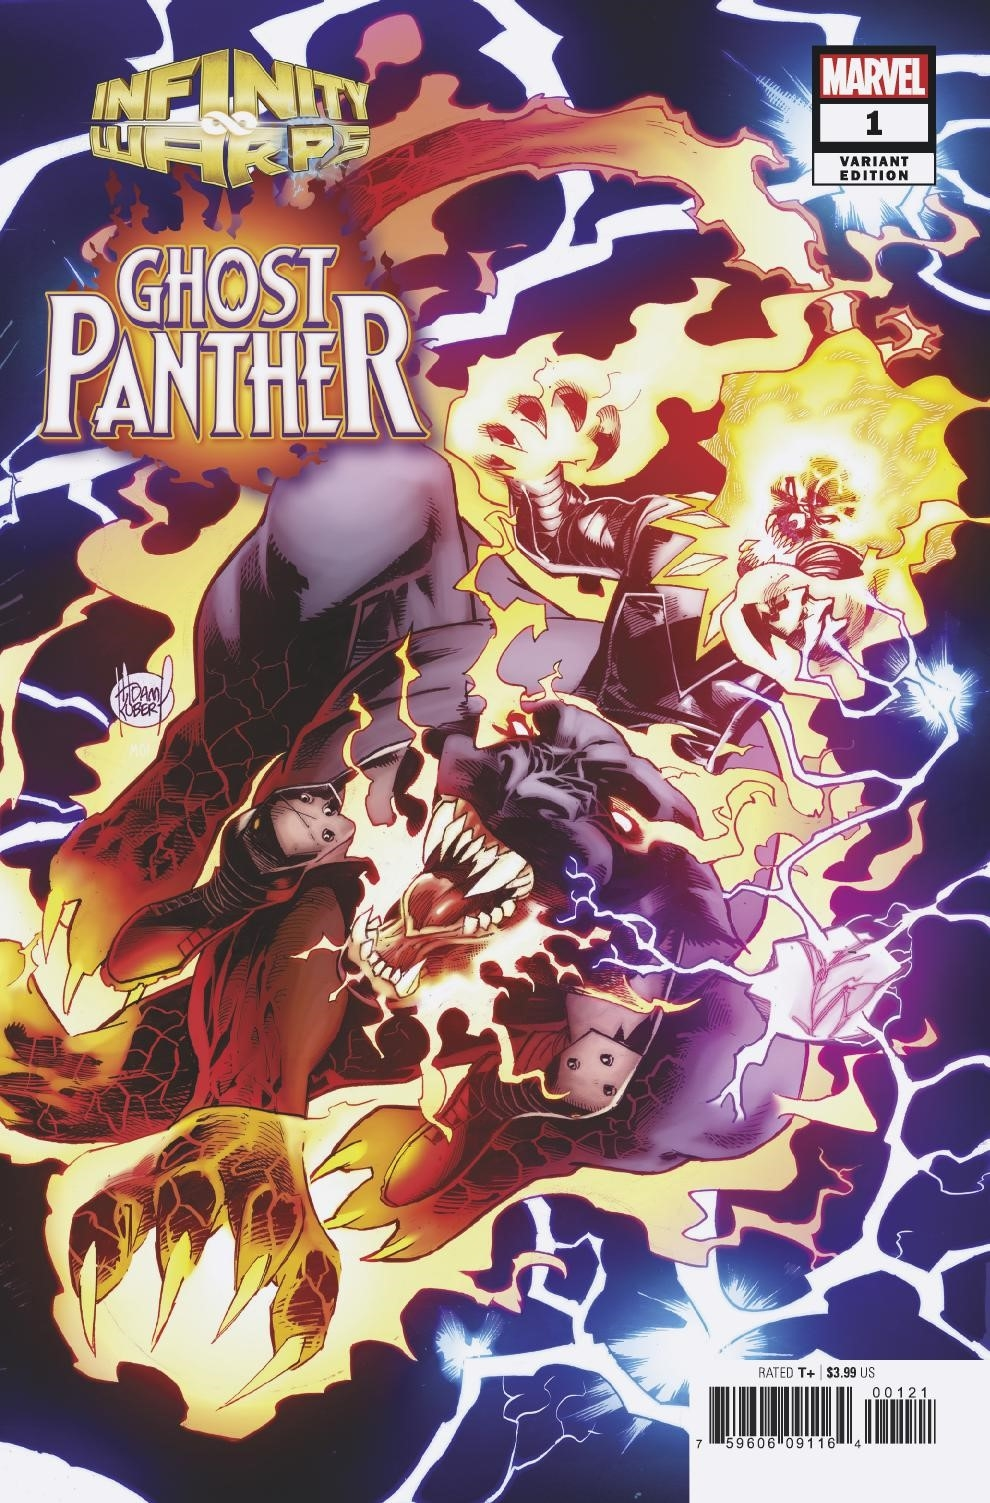 INFINITY WARS GHOST PANTHER #1 (OF 2) KUBERT CONNECTING VAR